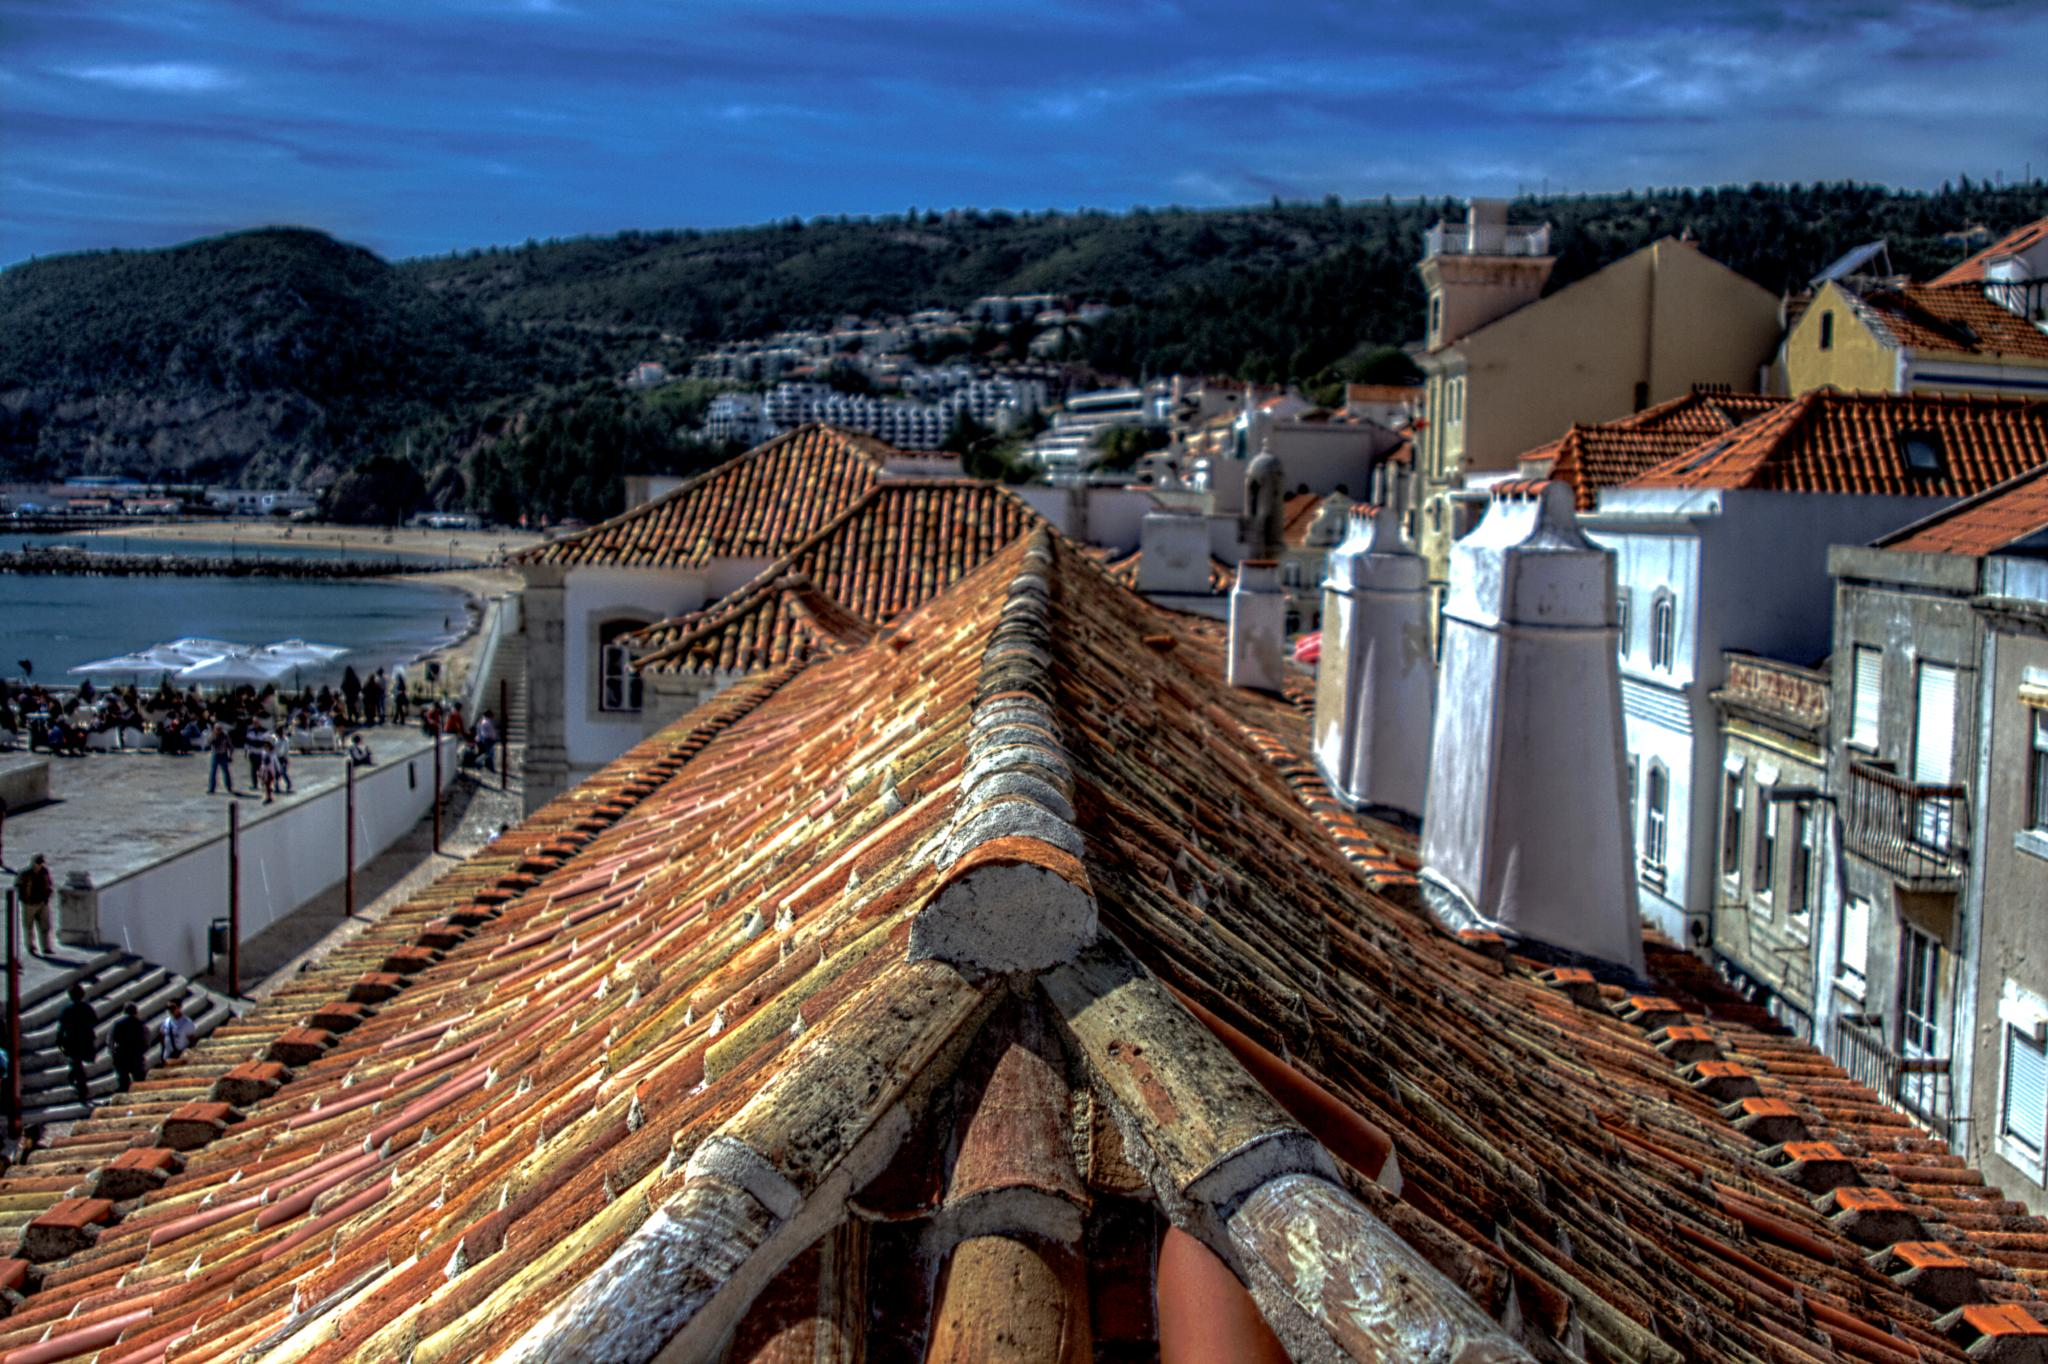 Roofview by Joaquim Gaspar